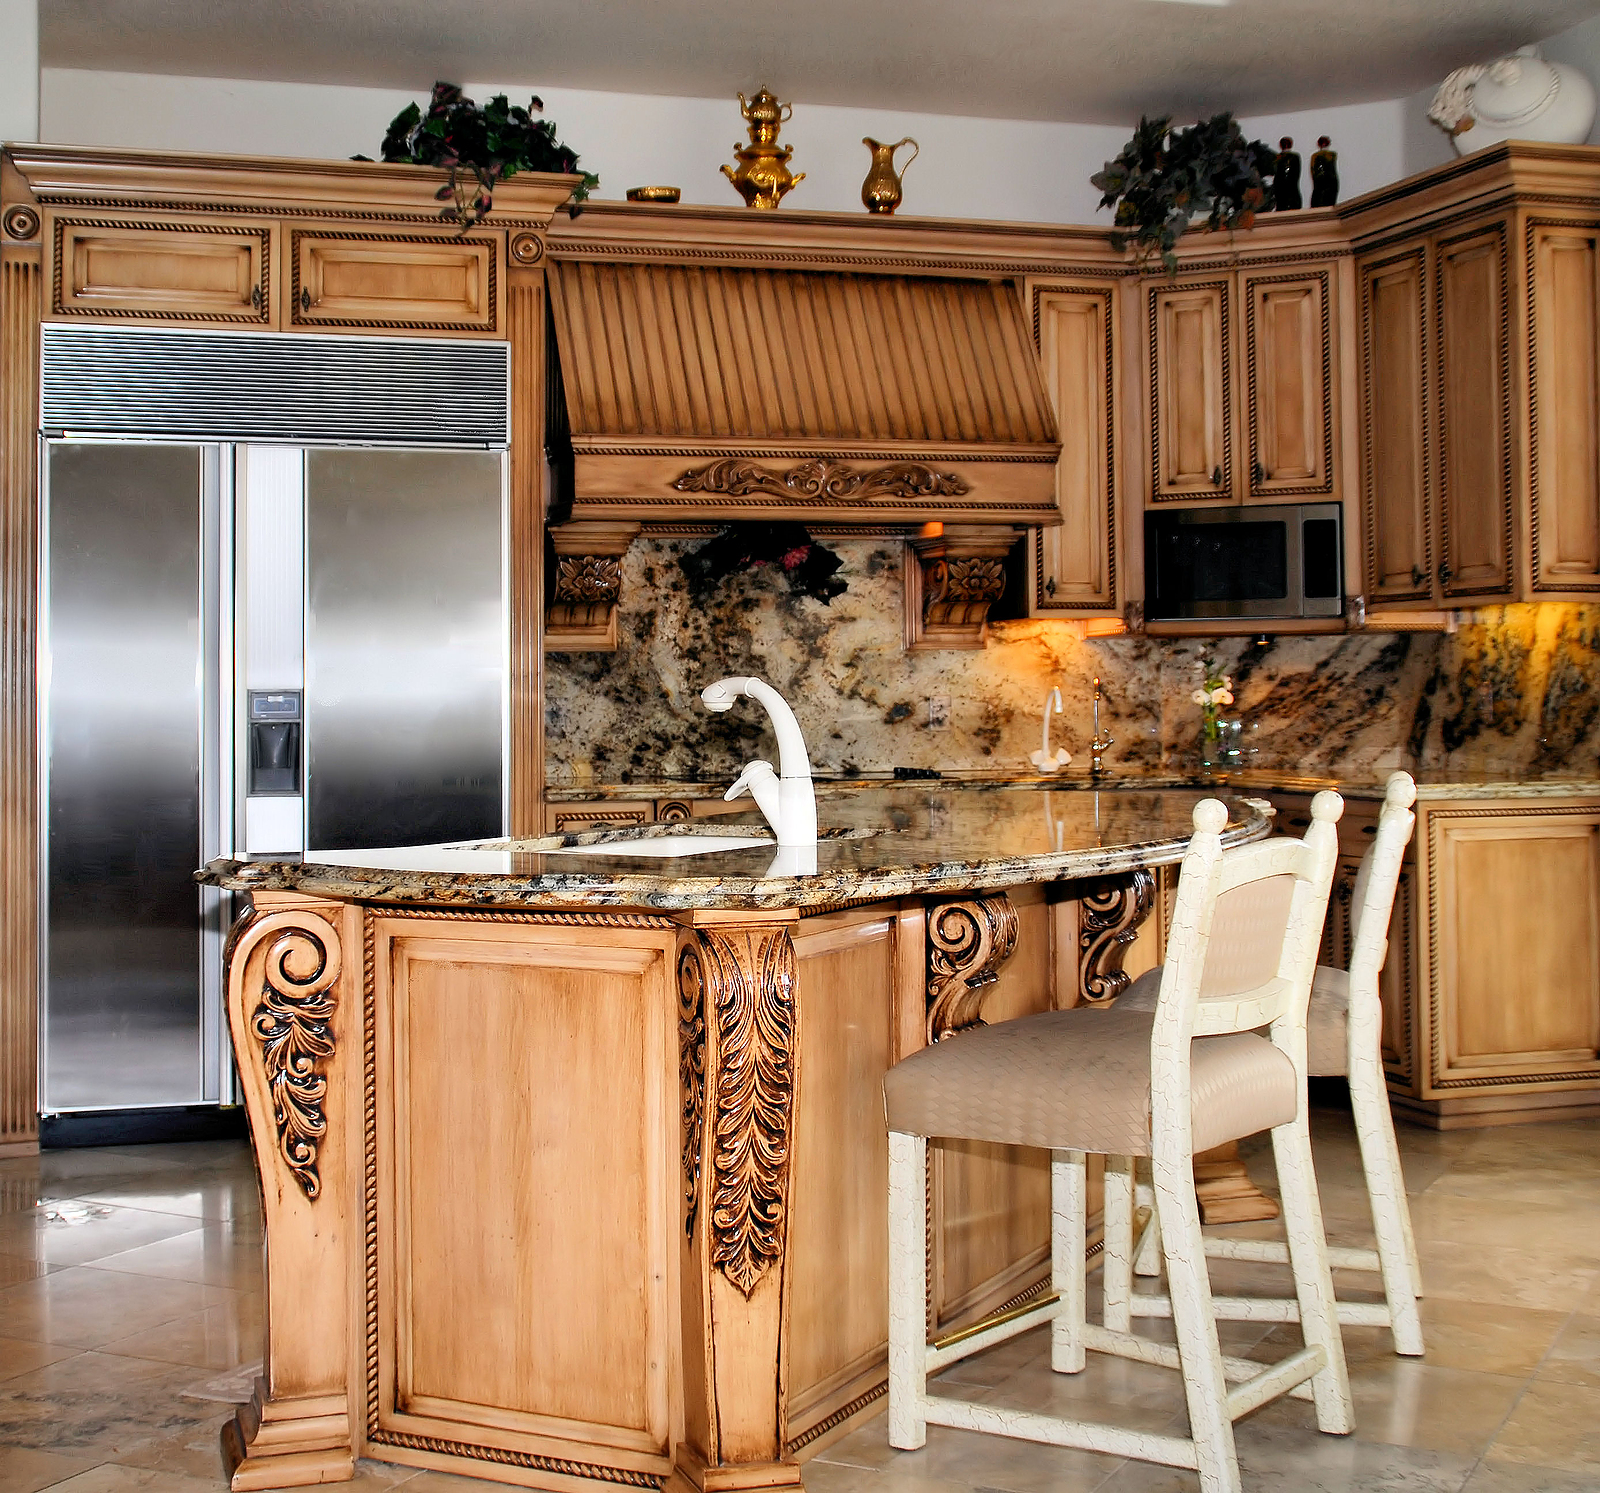 Kitchen Cabinets Small Space: Donco Designs Is A Pompano Beach Remodeling Contractor